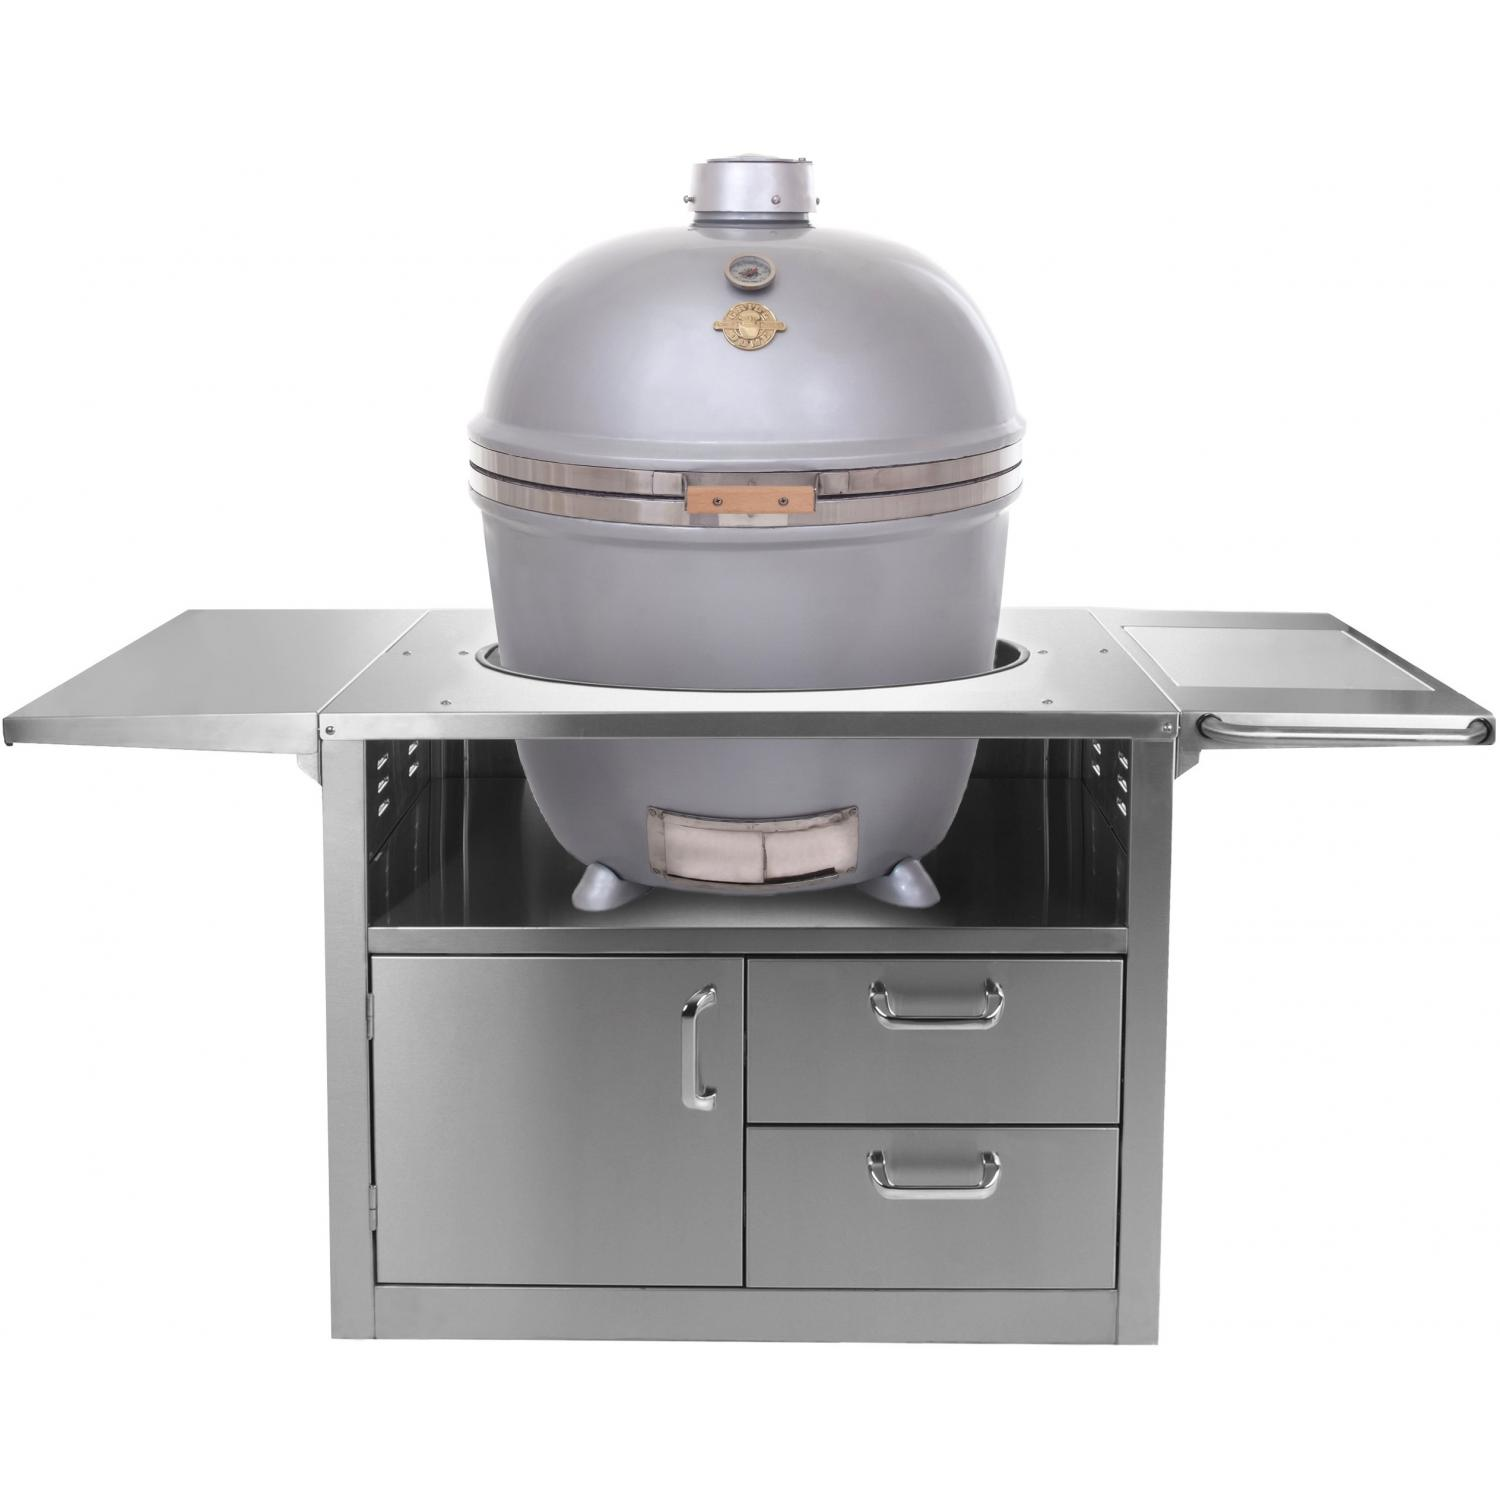 Grill Dome Infinity Series XL Kamado Grill On Stainless Steel Cart - Silver, Discount ID GDXL-SV SS-Kamado-Top-XL-BGE SS-Kamado-Cart